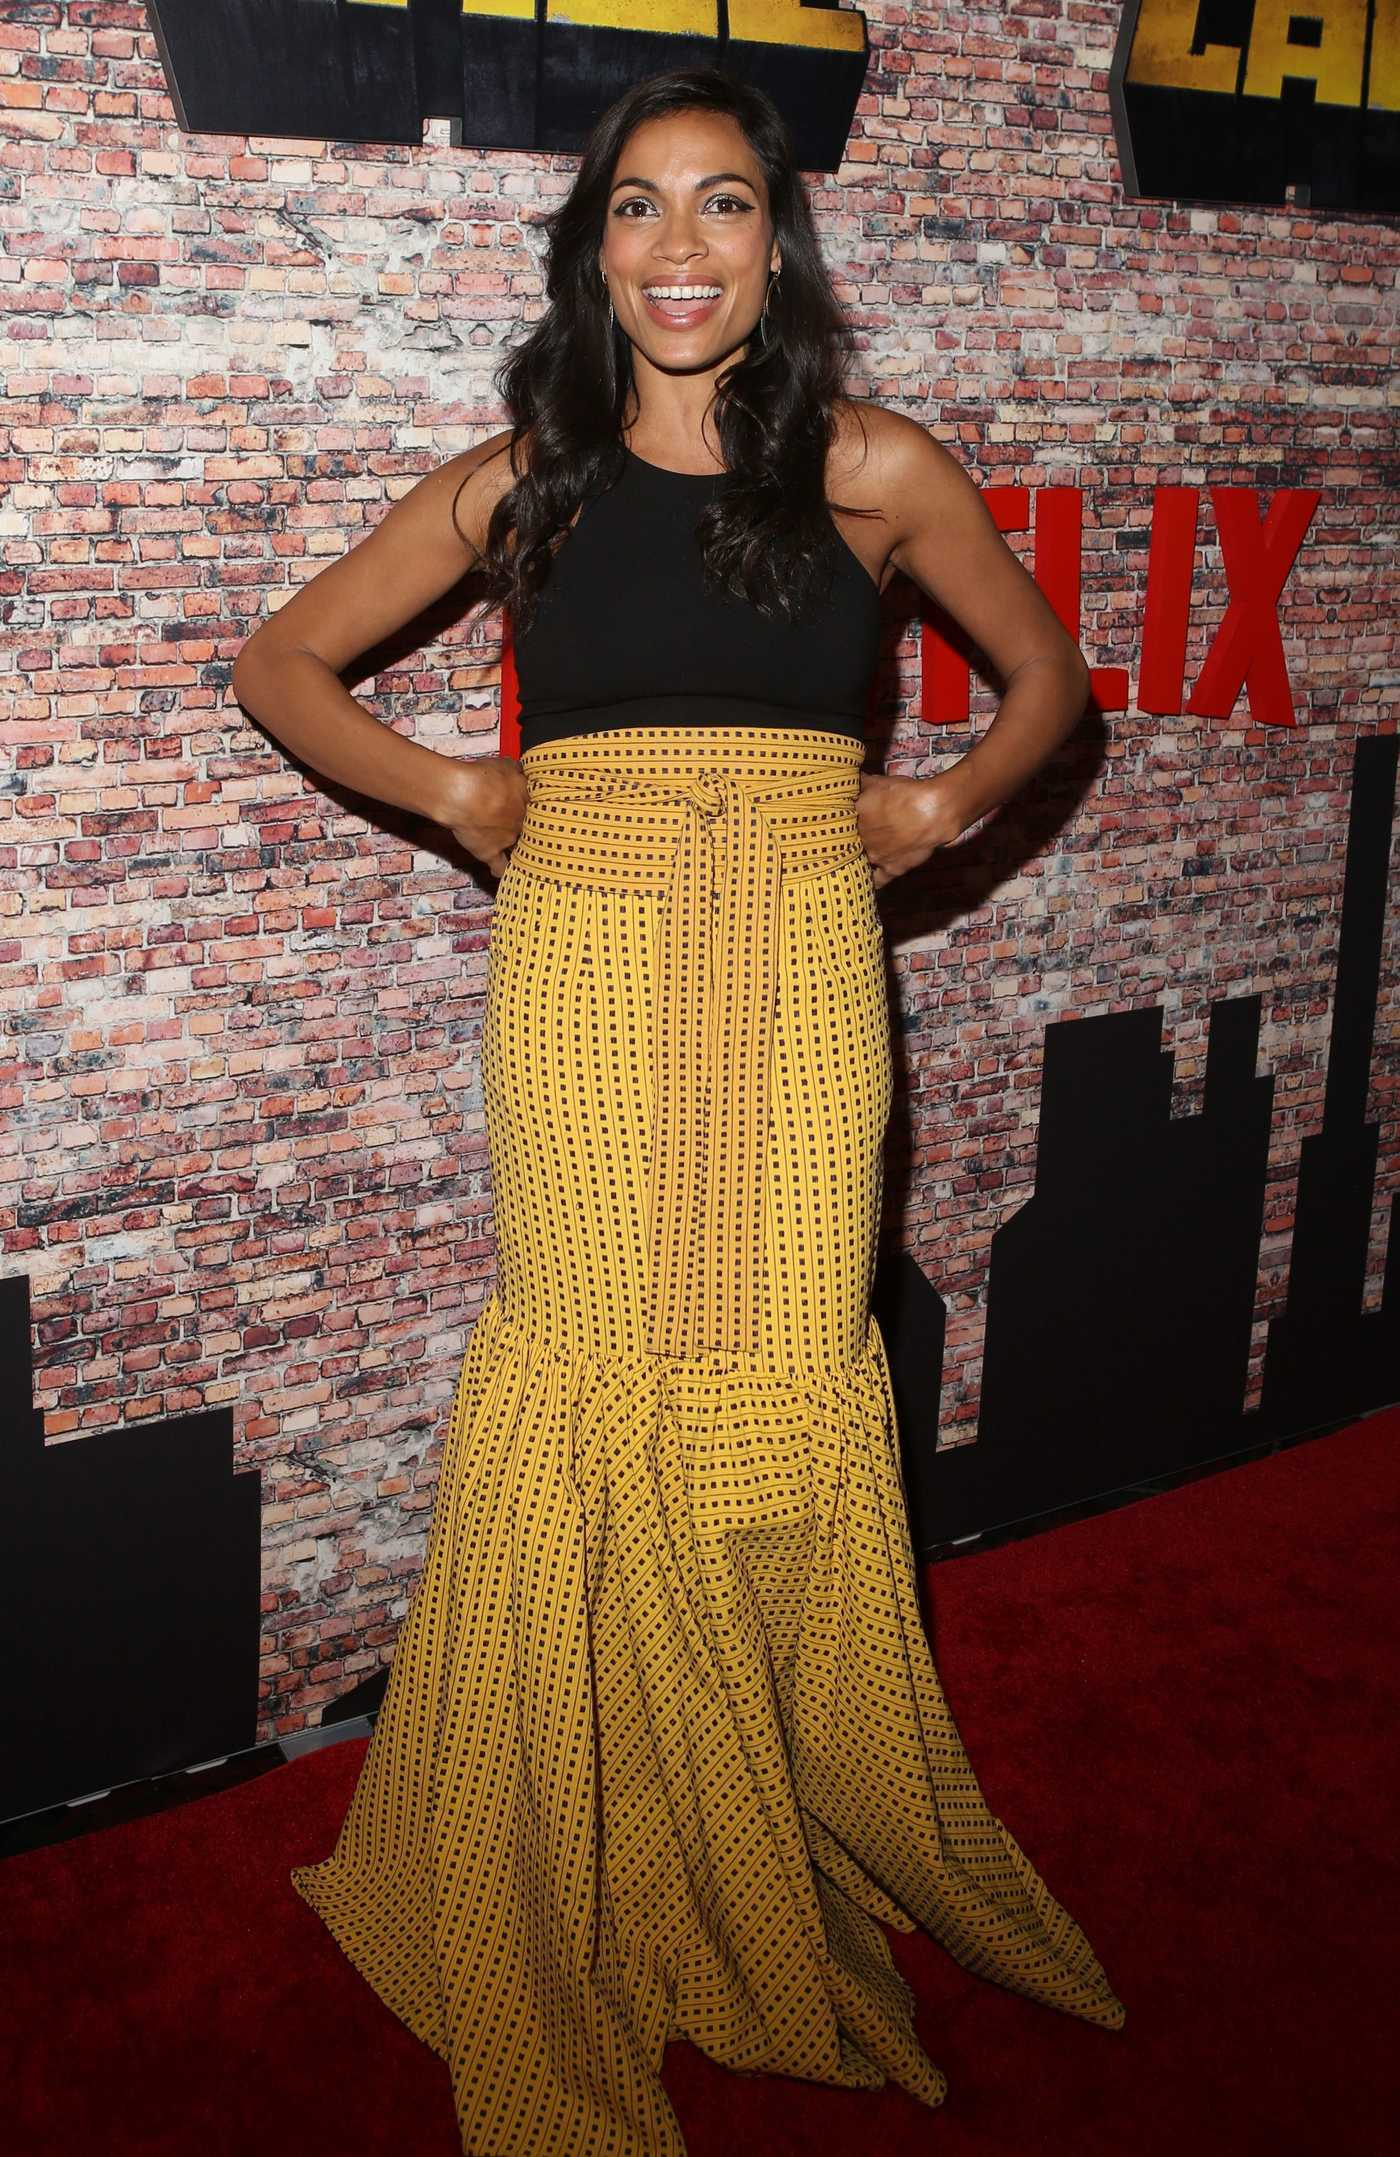 Rosario Dawson at the Luke Cage Premiere in Harlem, New York 09/28/2016